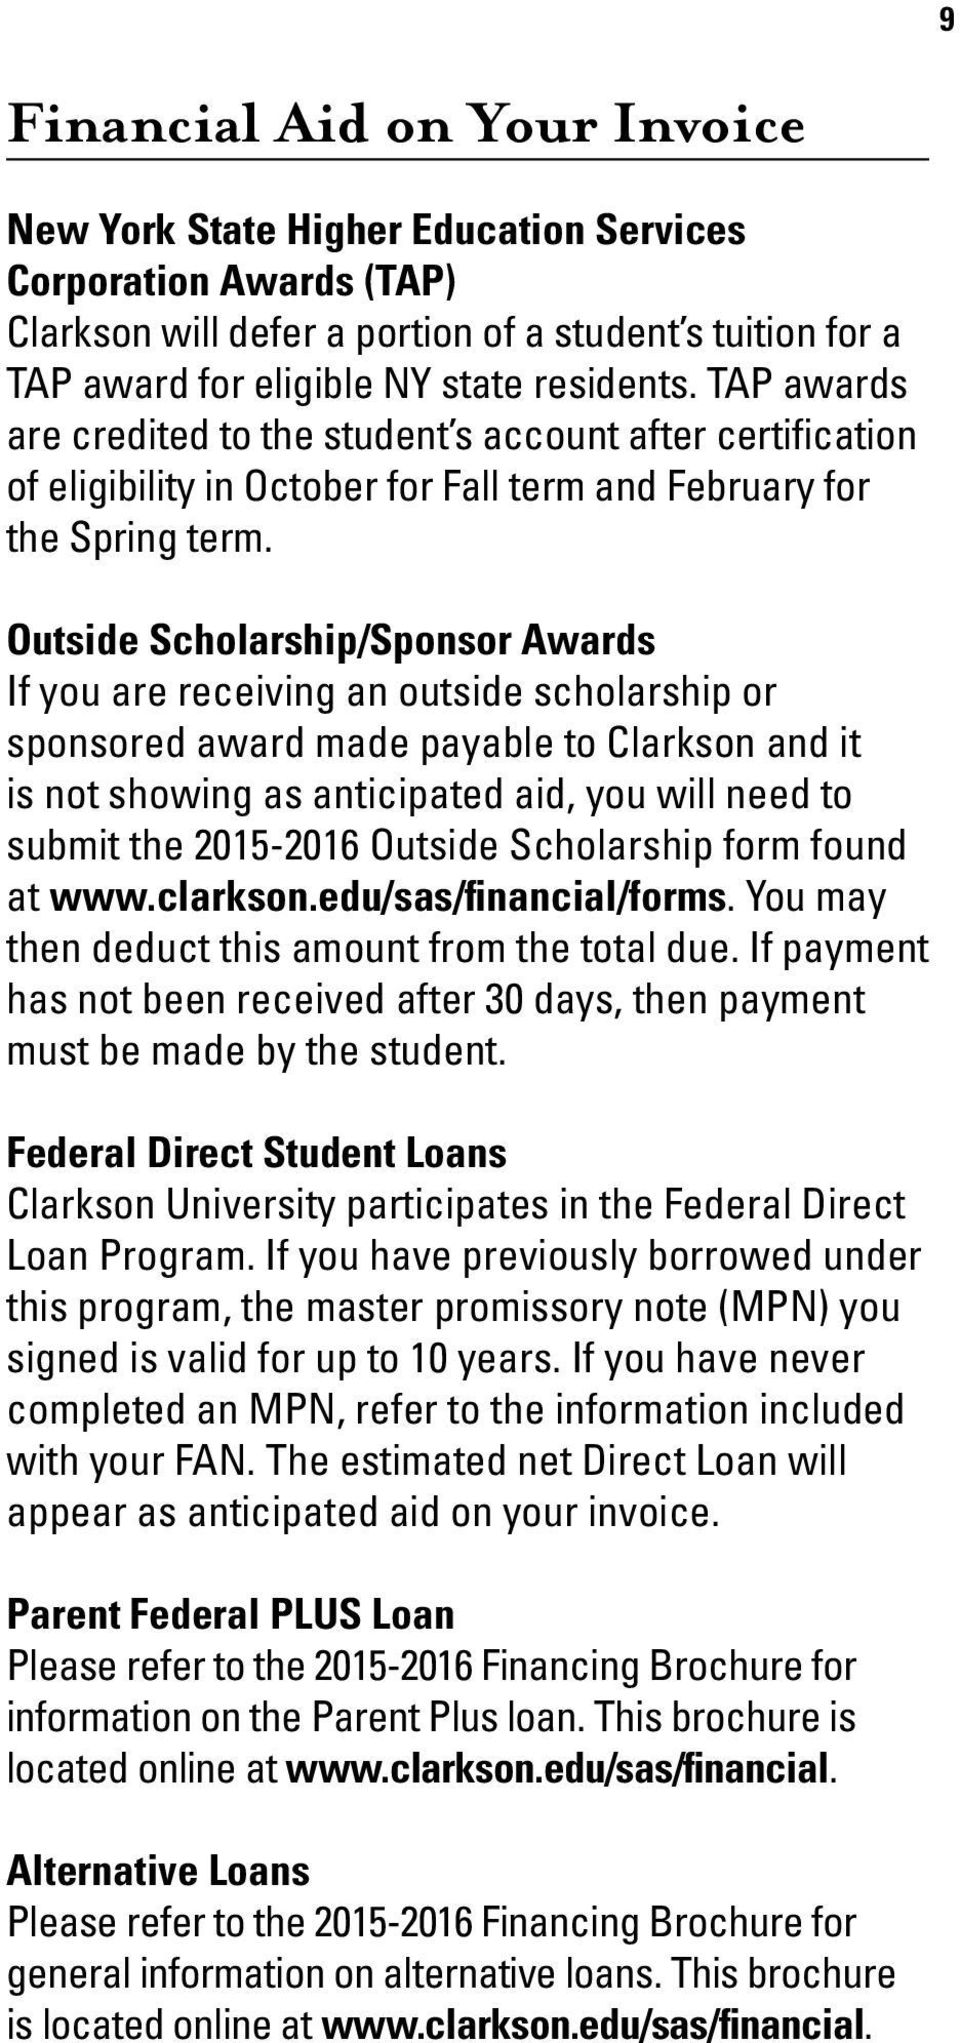 Outside Scholarship/Sponsor Awards If you are receiving an outside scholarship or sponsored award made payable to Clarkson and it is not showing as anticipated aid, you will need to submit the